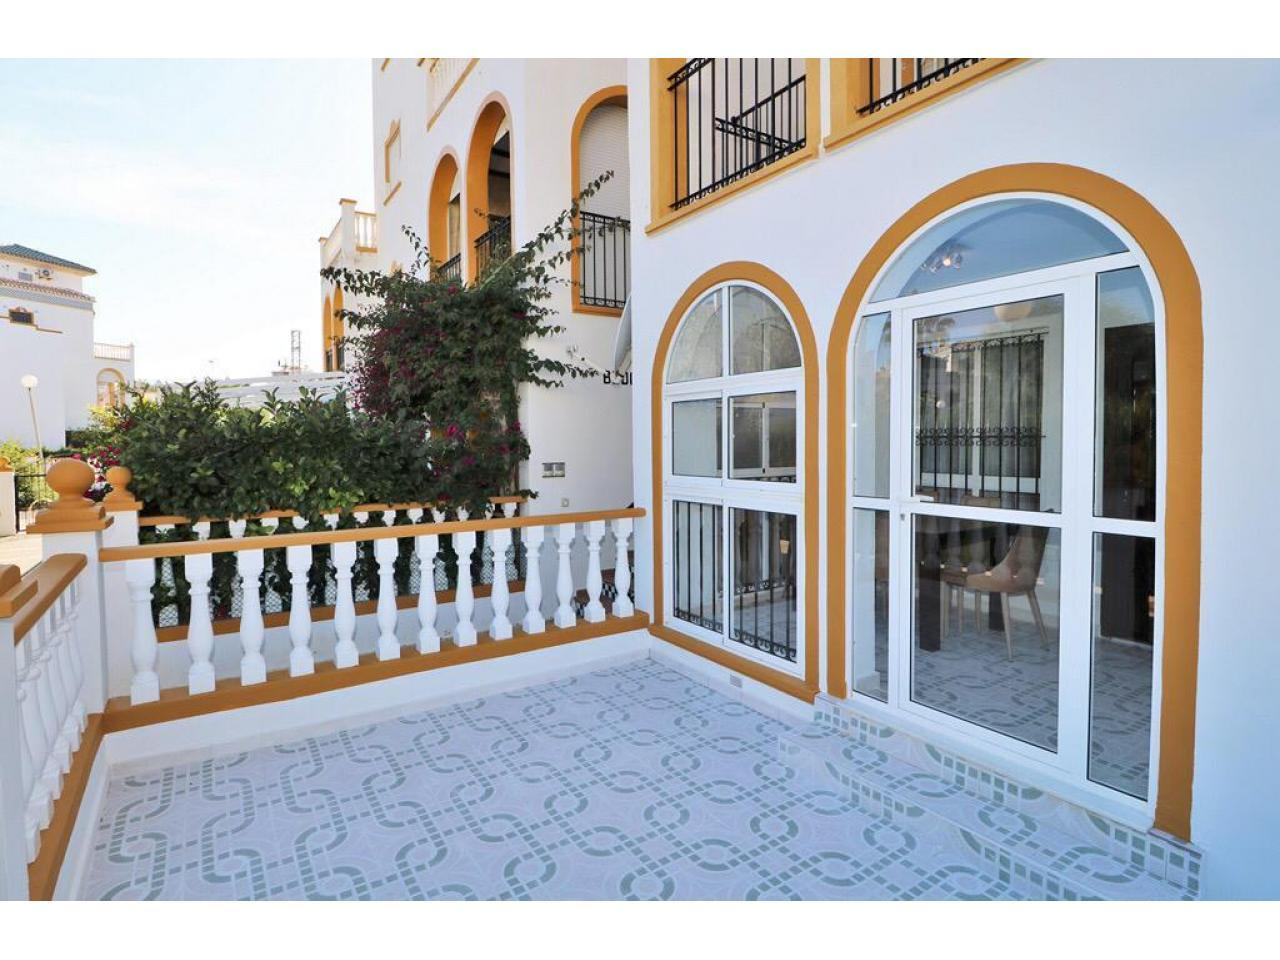 Apartment in Torrevieja, Spain for rent - 4